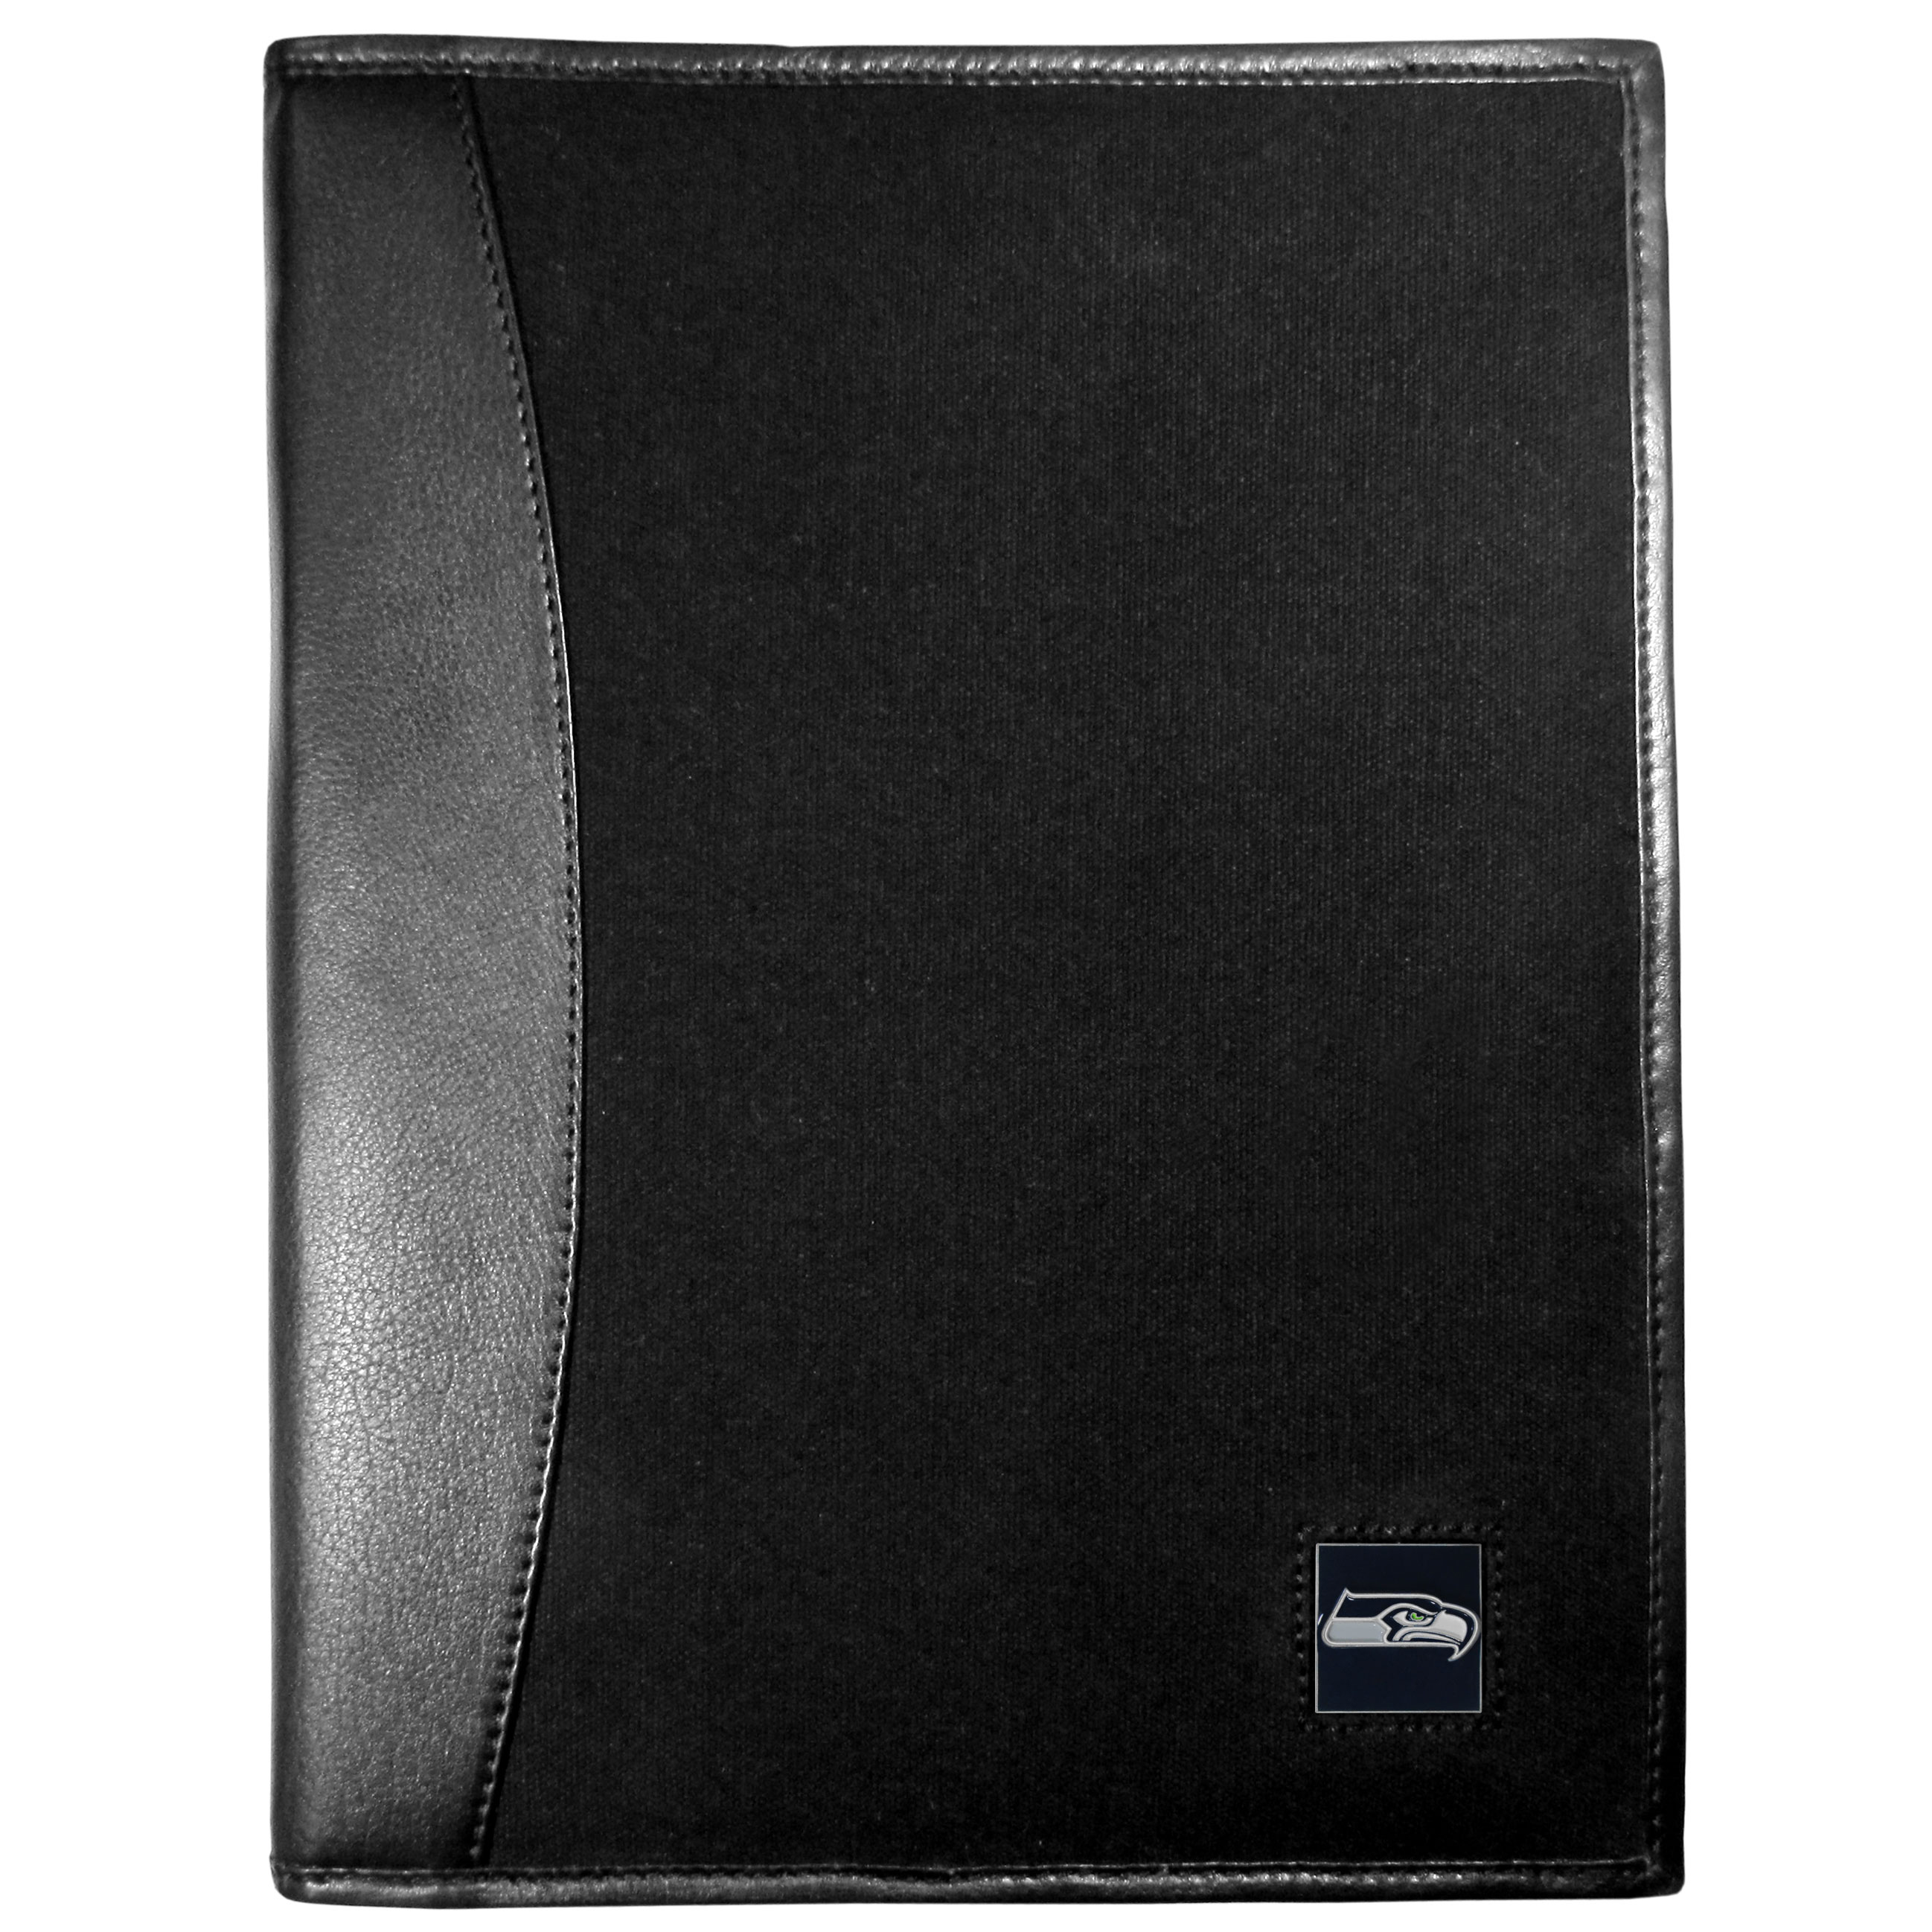 Seattle Seahawks Leather and Canvas Padfolio - Our leather and canvas padfolio perfectly blends form and function. The attractive portfolio is bound in fine grain leather with an attractive canvas finish and the interior is a soft nylon. This high quality business accessory also features a fully cast metal Seattle Seahawks emblem that is subtly set in the corner of the organizer. It is packed with features like 6 card slots for badges, business cards, hotel keys or credit cards and ID with a large pocket for loose papers and a writing tablet slot making it a must-have for the professional on the go.